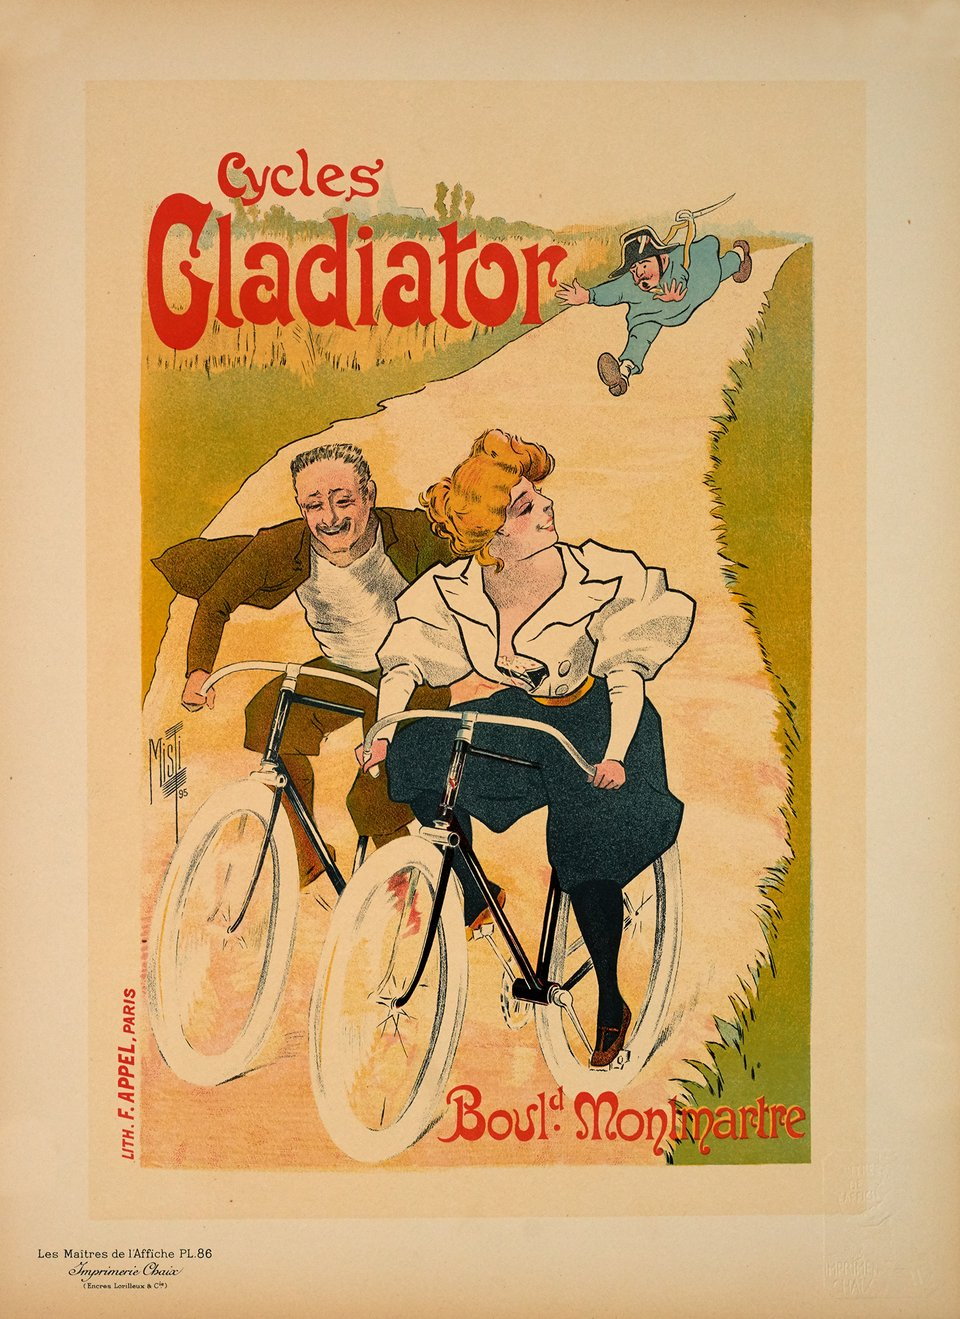 Cycles Gladiator – Vintage poster – MISTI – 1897